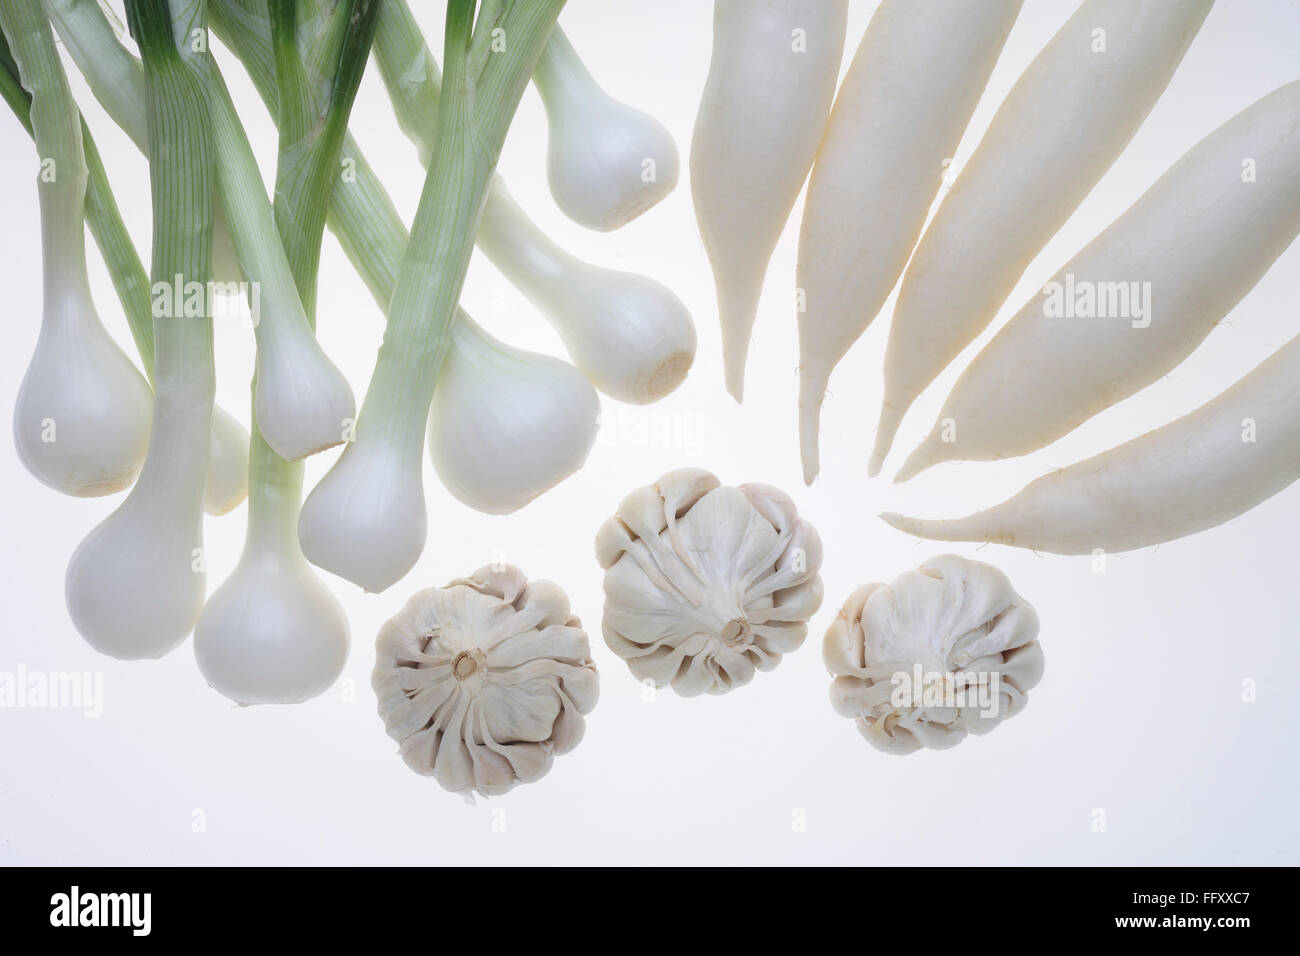 Vegetable and spices , garlic radishes with onion on white background - Stock Image